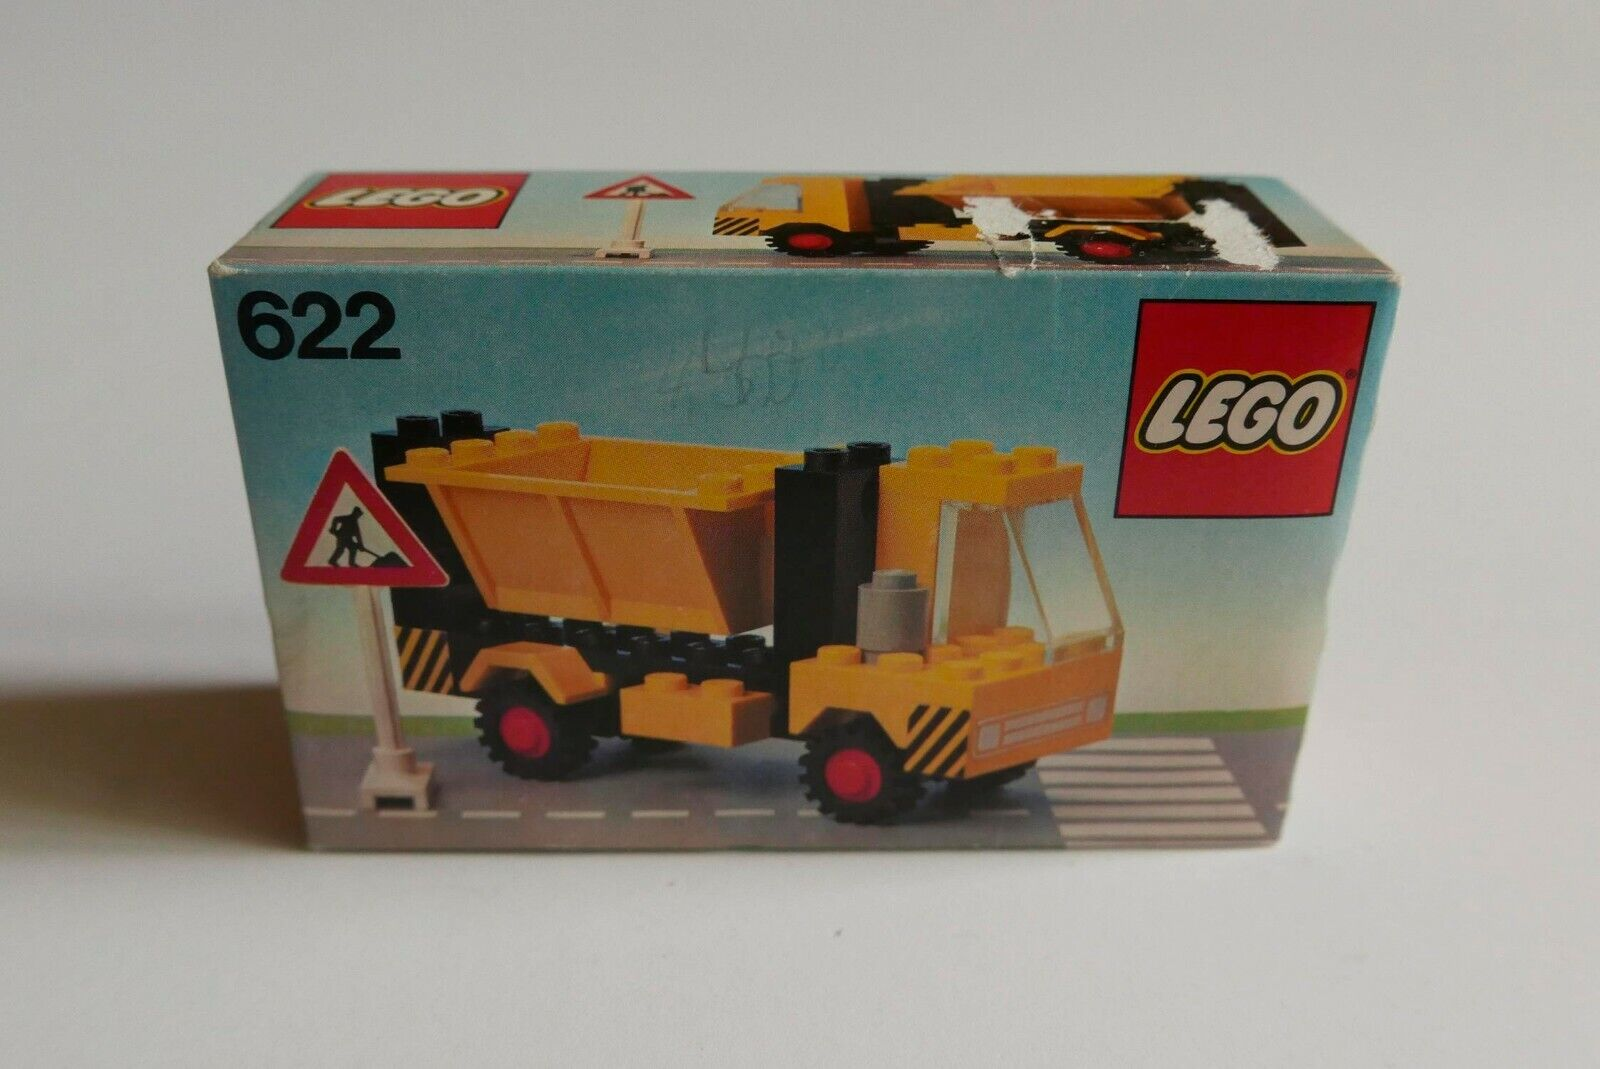 LEGO Town 622 Tipper Truck NEW Sealed RARE Vintage